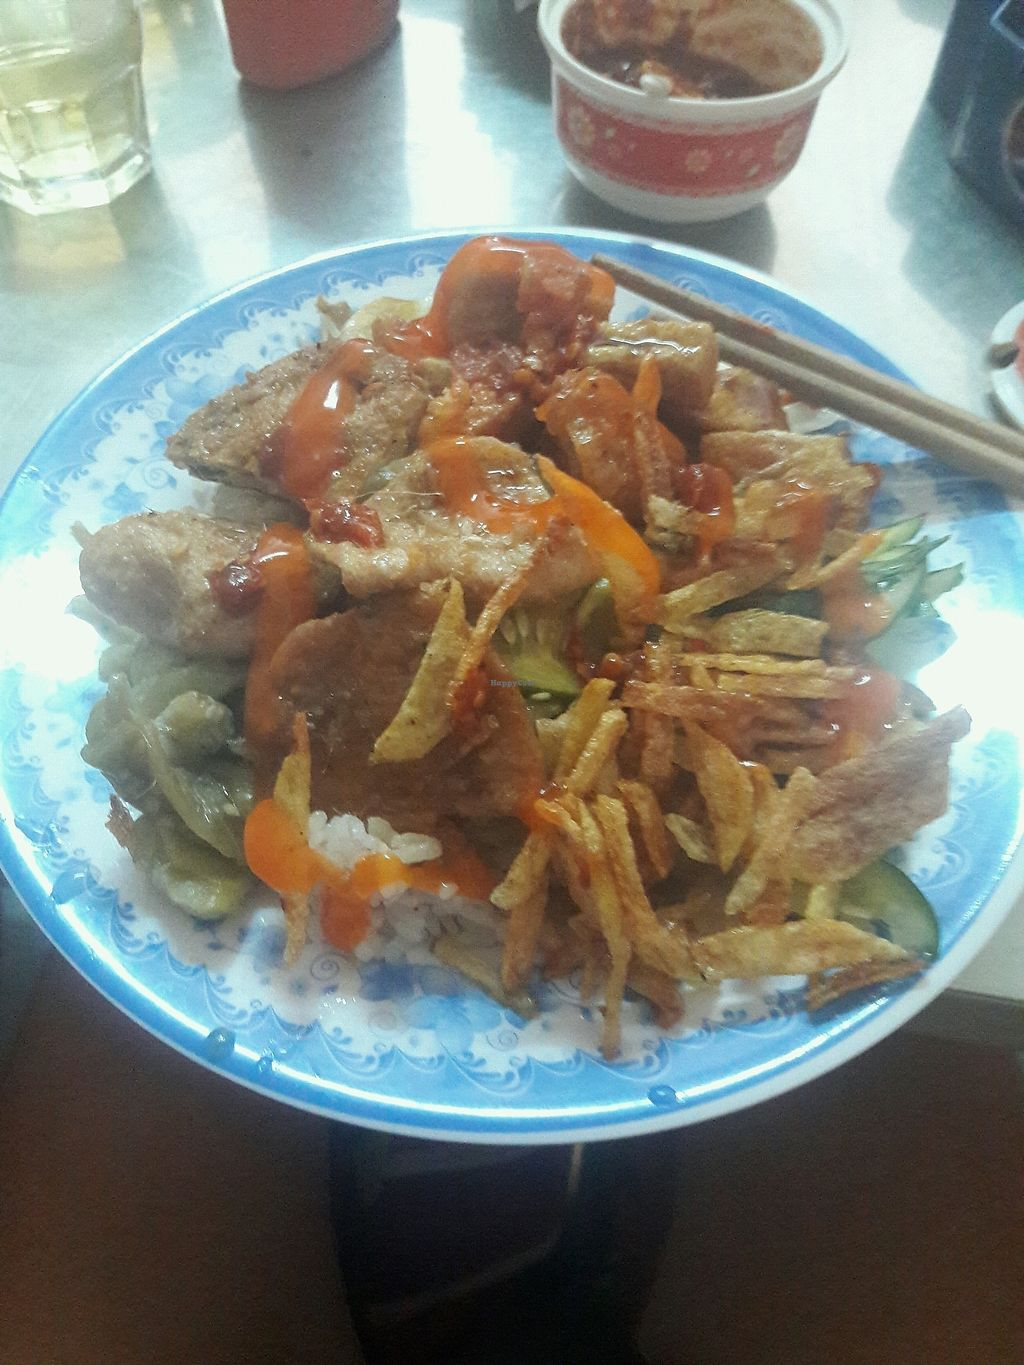 """Photo of Au Lac Chay  by <a href=""""/members/profile/swaadly"""">swaadly</a> <br/>20 000VND for a plate of mock meats, veg, rice and a small soup.  <br/> October 7, 2017  - <a href='/contact/abuse/image/9702/312608'>Report</a>"""